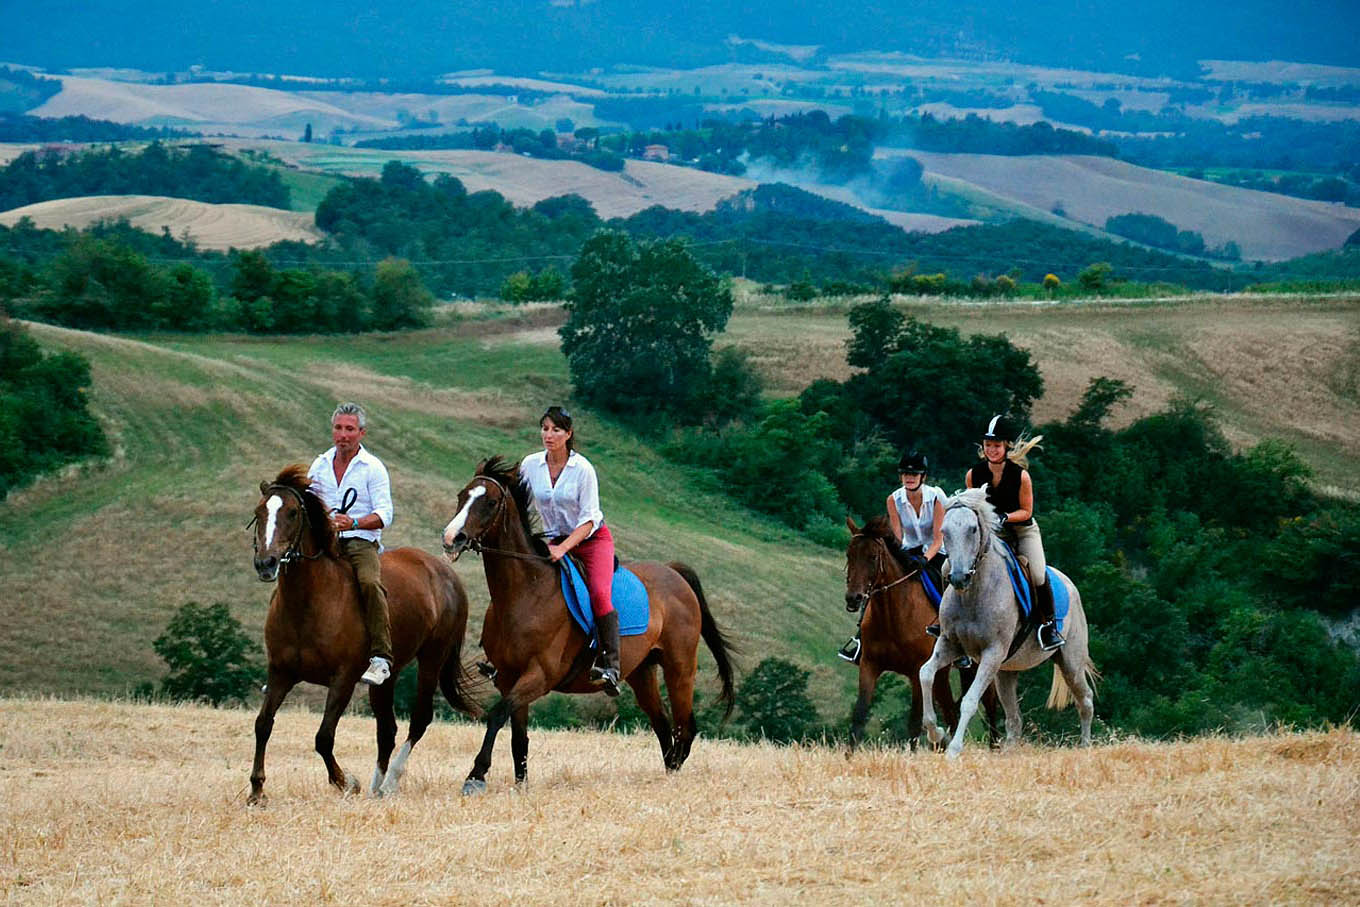 horses, things to do in Tuscany - Things to do in Chianti Siena Tuscany